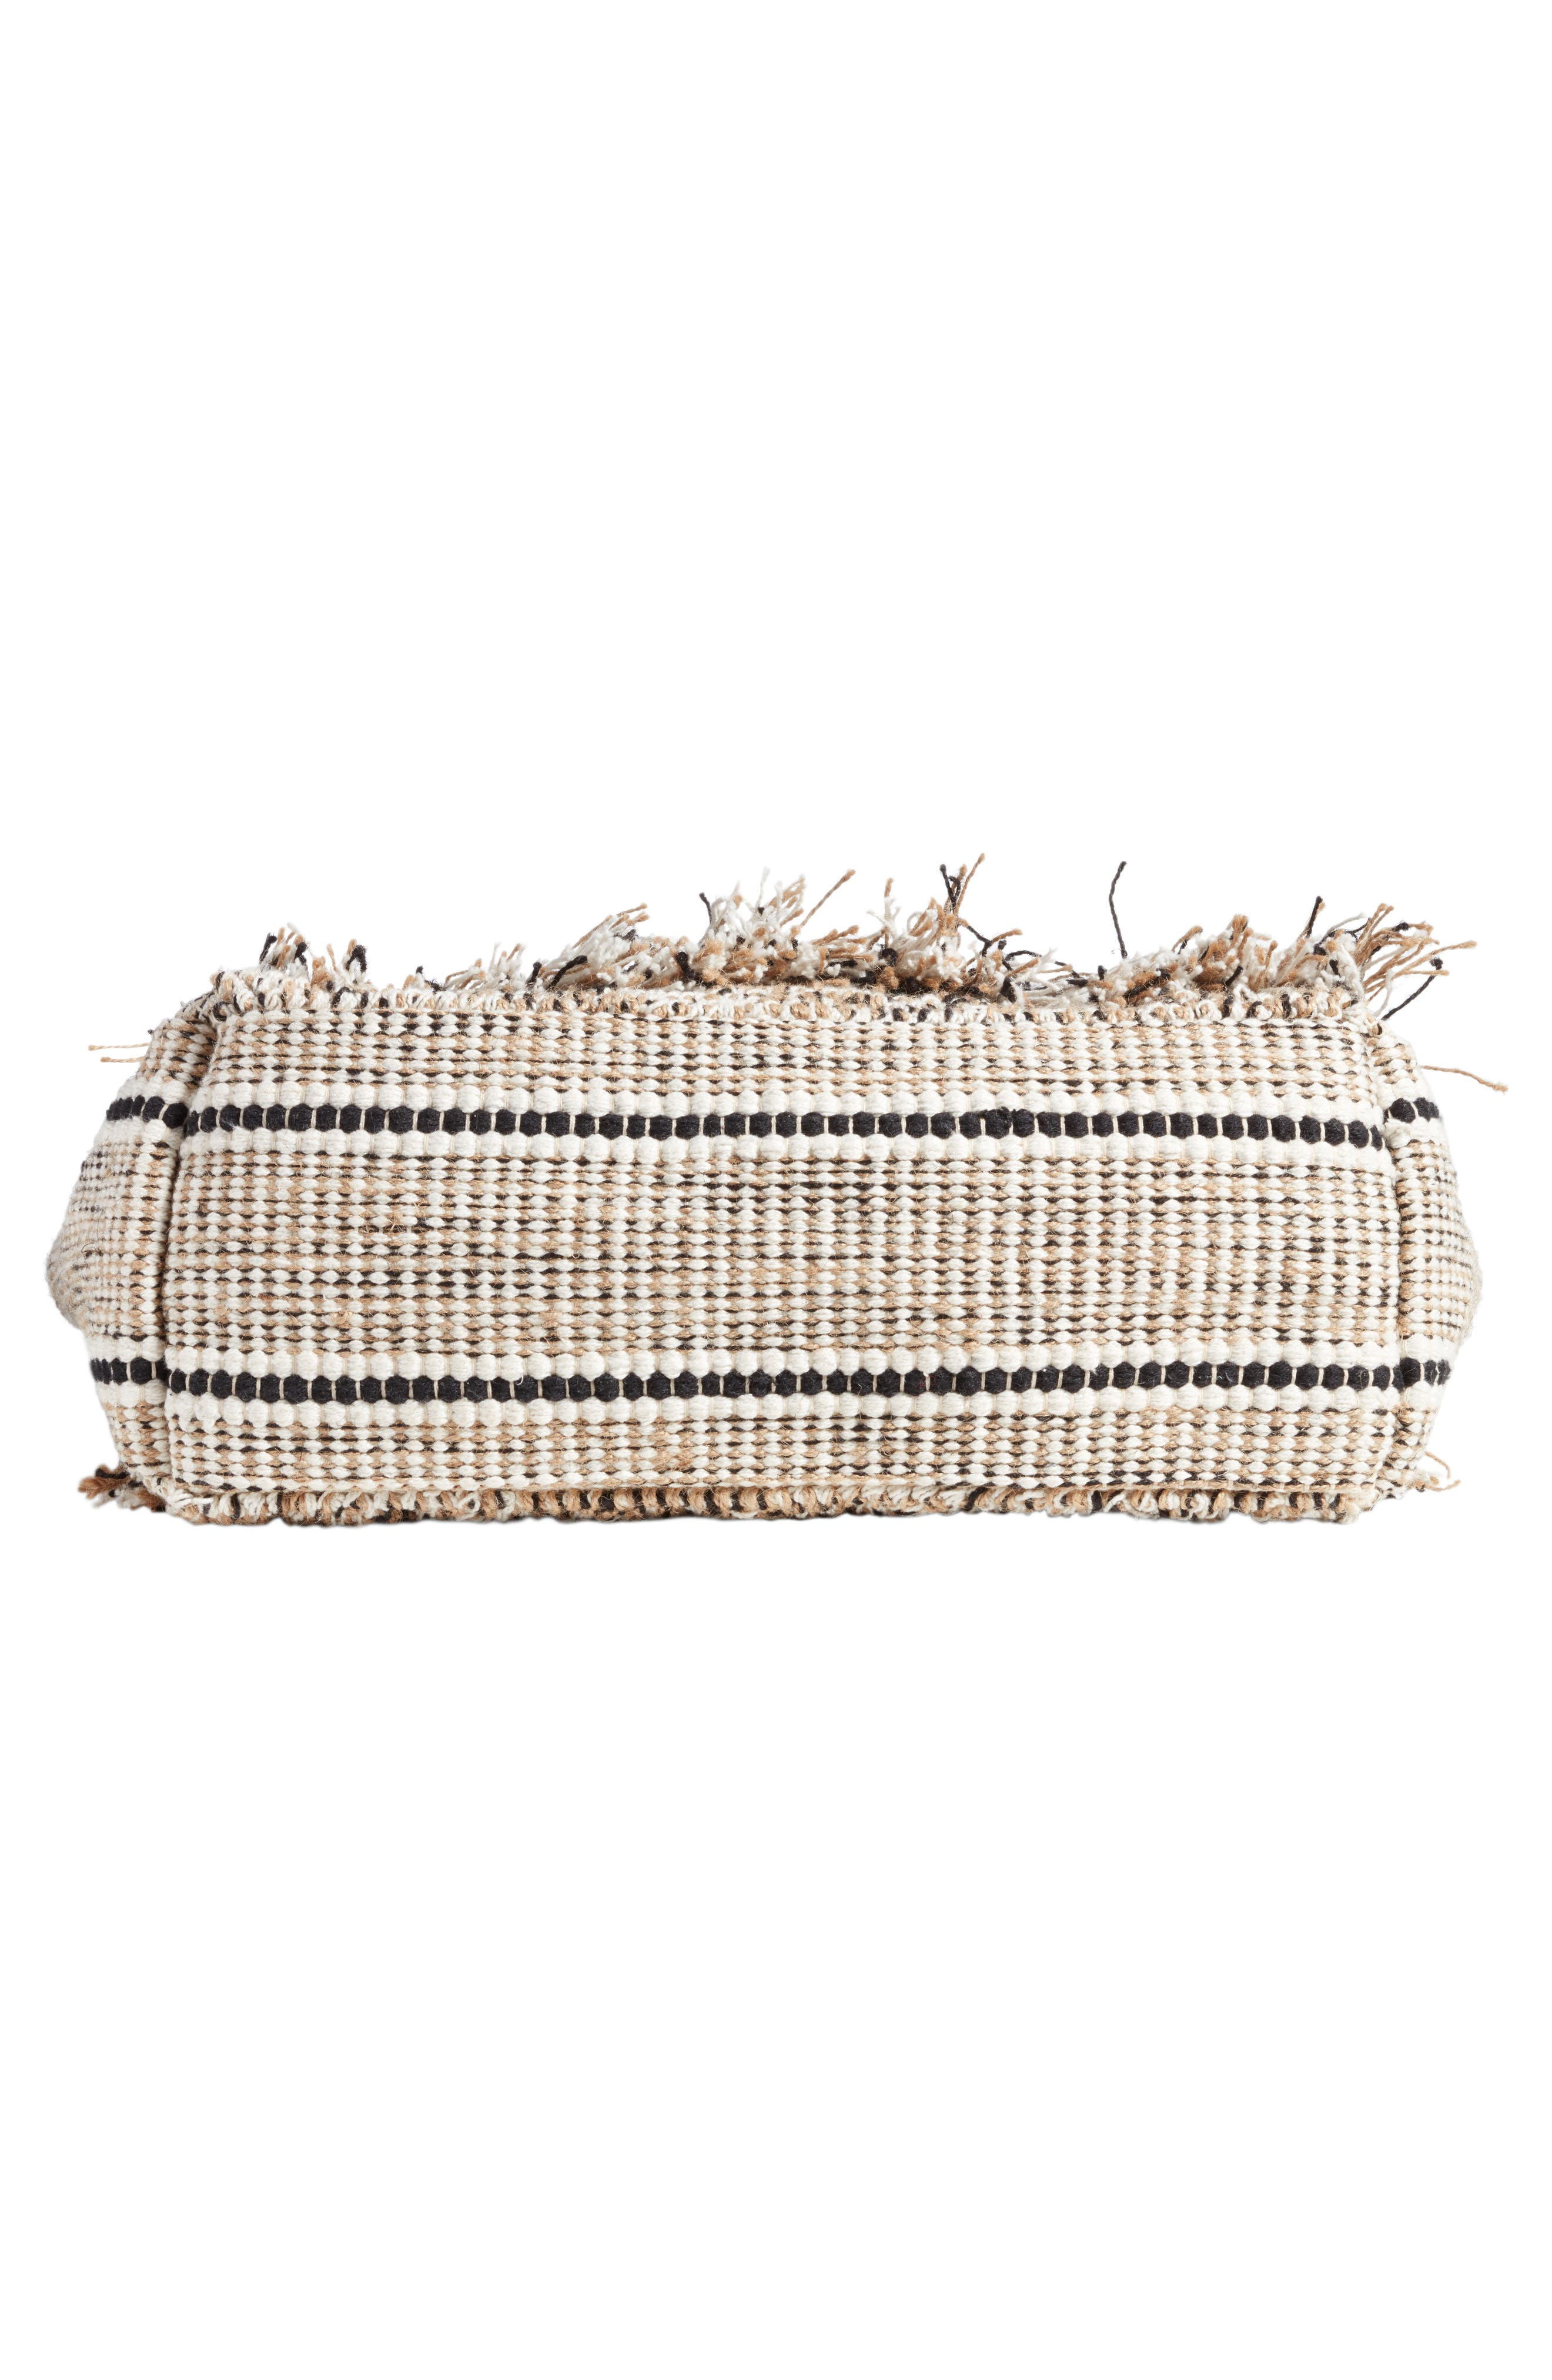 Carried Away Woven Weekend Tote,                             Alternate thumbnail 6, color,                             Black Sands